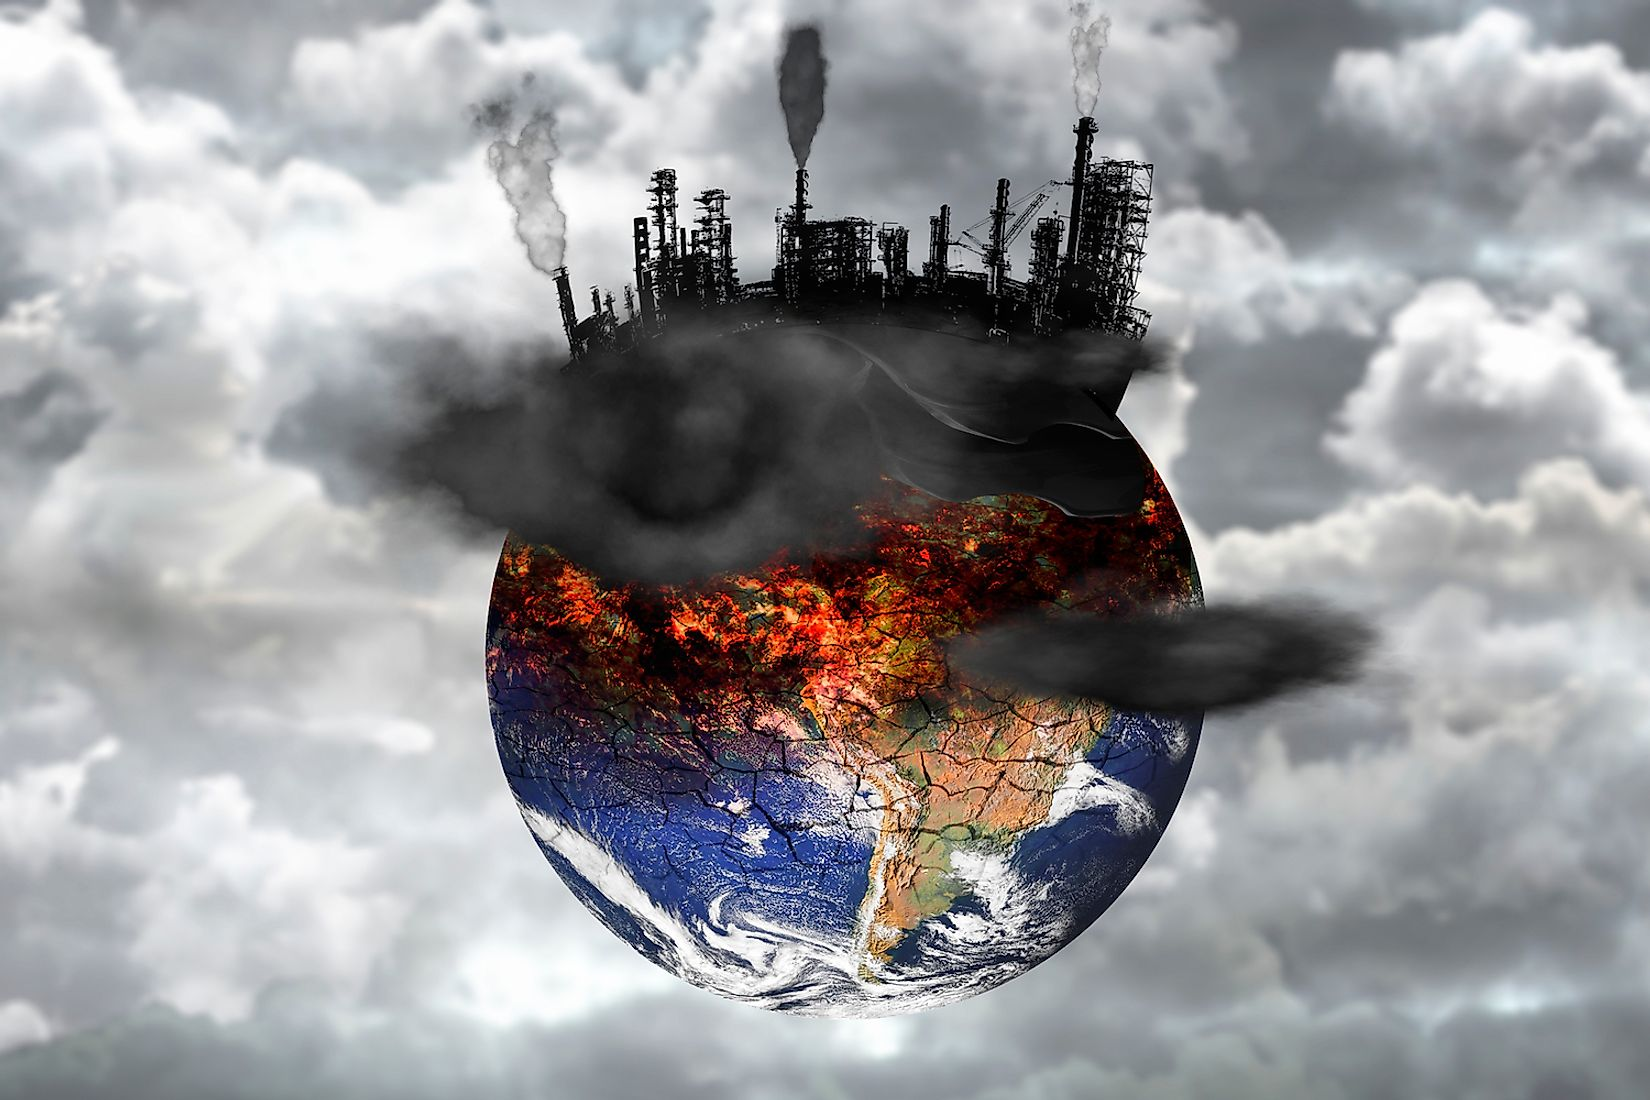 Pollution of the environment is one of the biggest threats to lifeforms on Earth today. Image credit: Martina Badini/Shutterstock.com